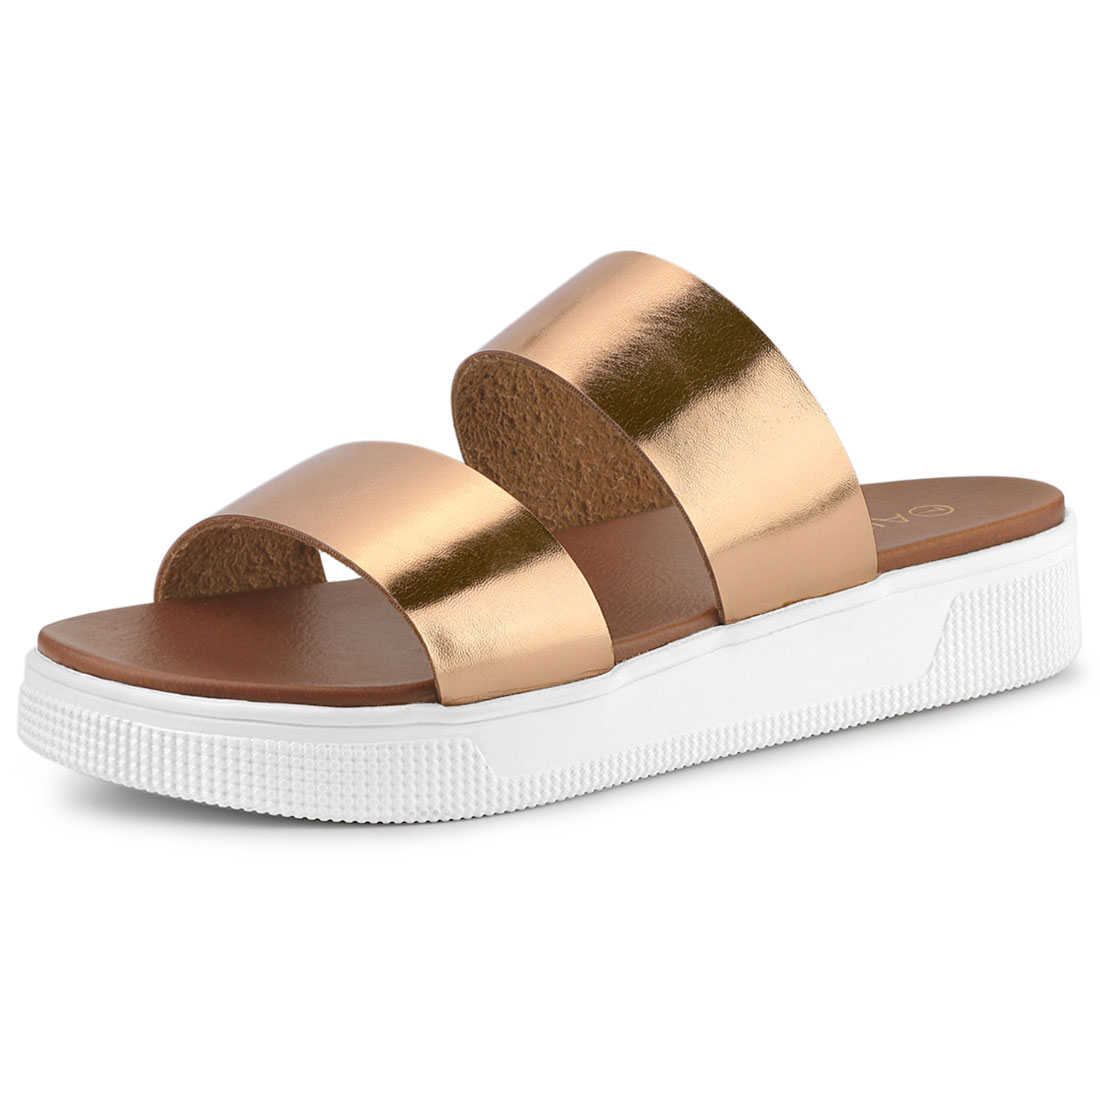 Allegra K Women's Open Toe Flatform Slides Sandals Rose Gold US 10